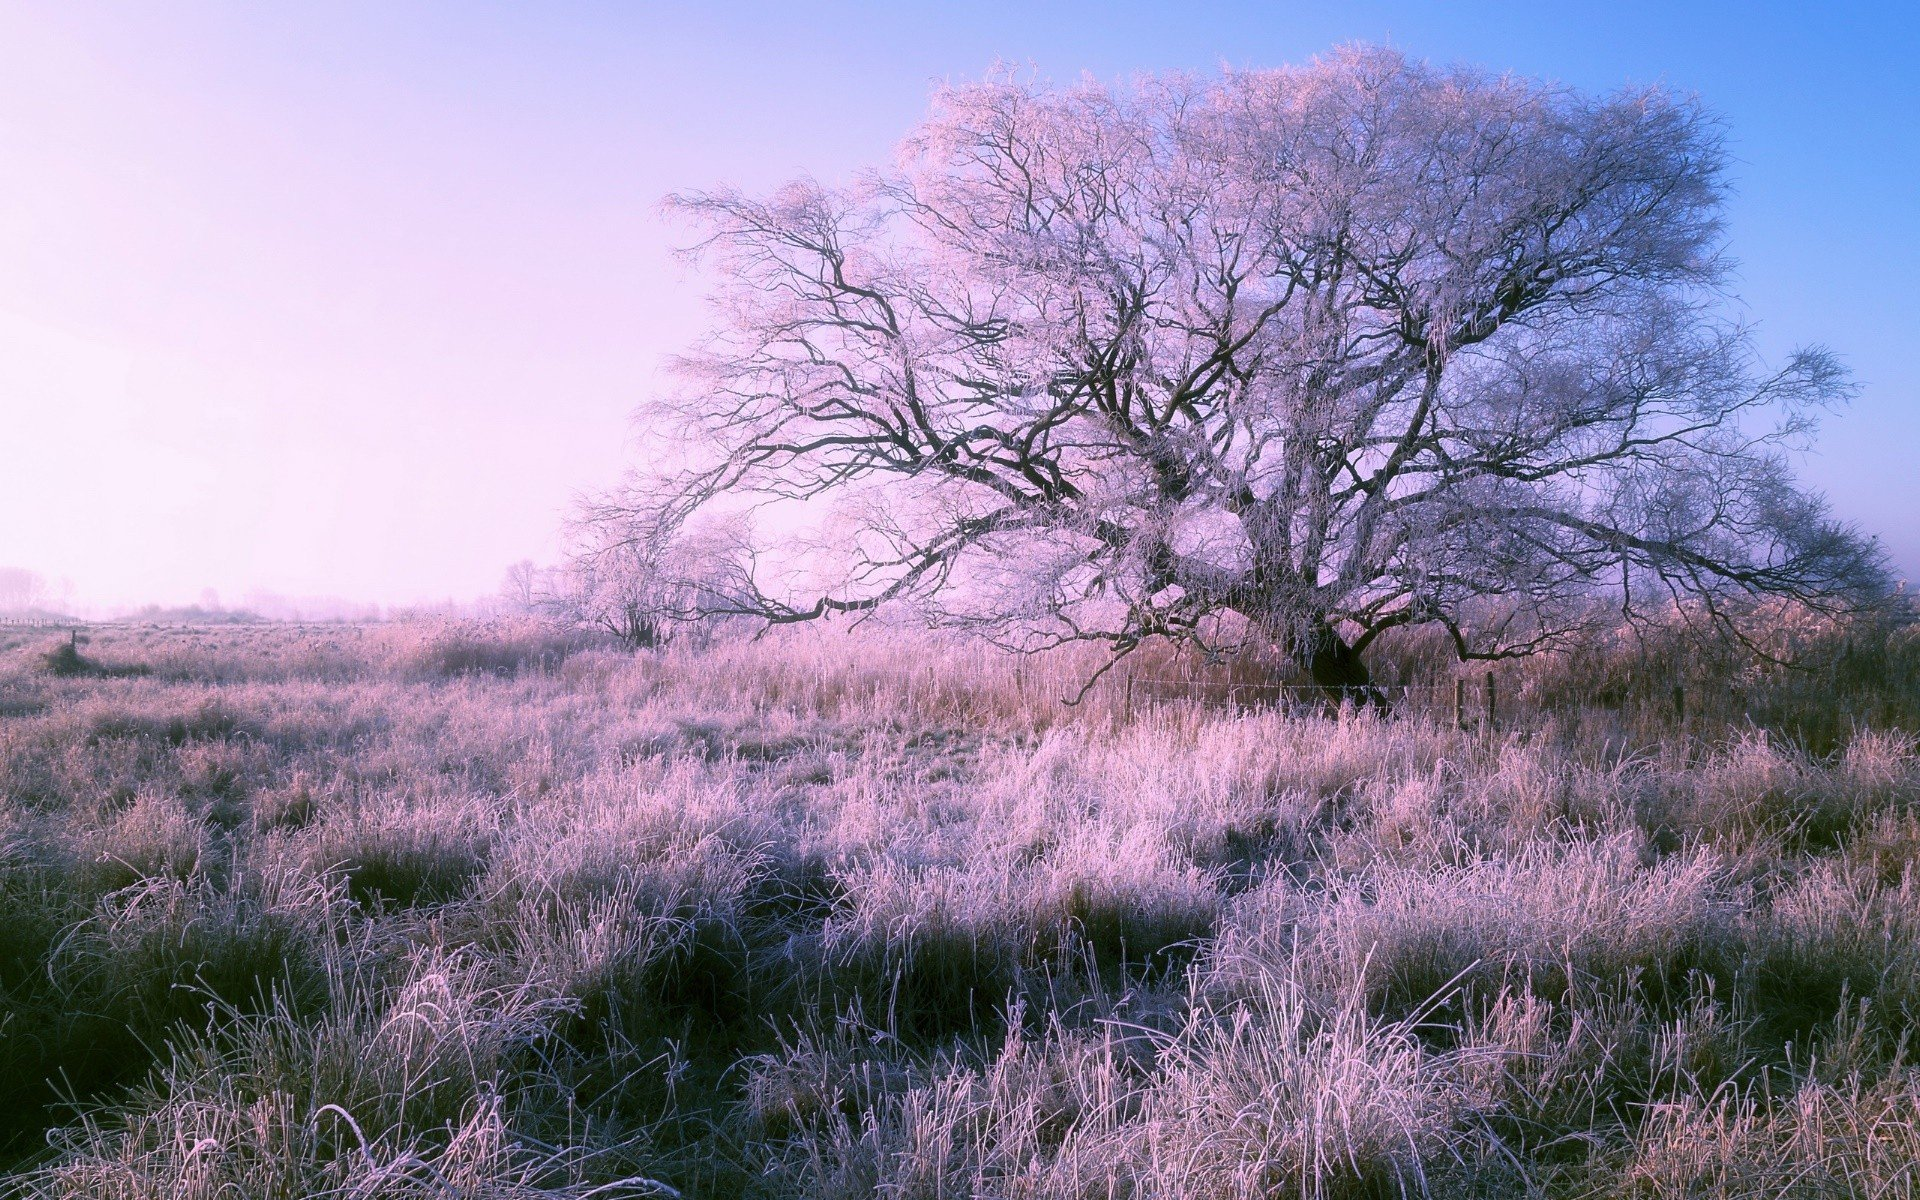 Winter nature cold landscape trees hd wallpapers - Wallpaper hd nature winter ...